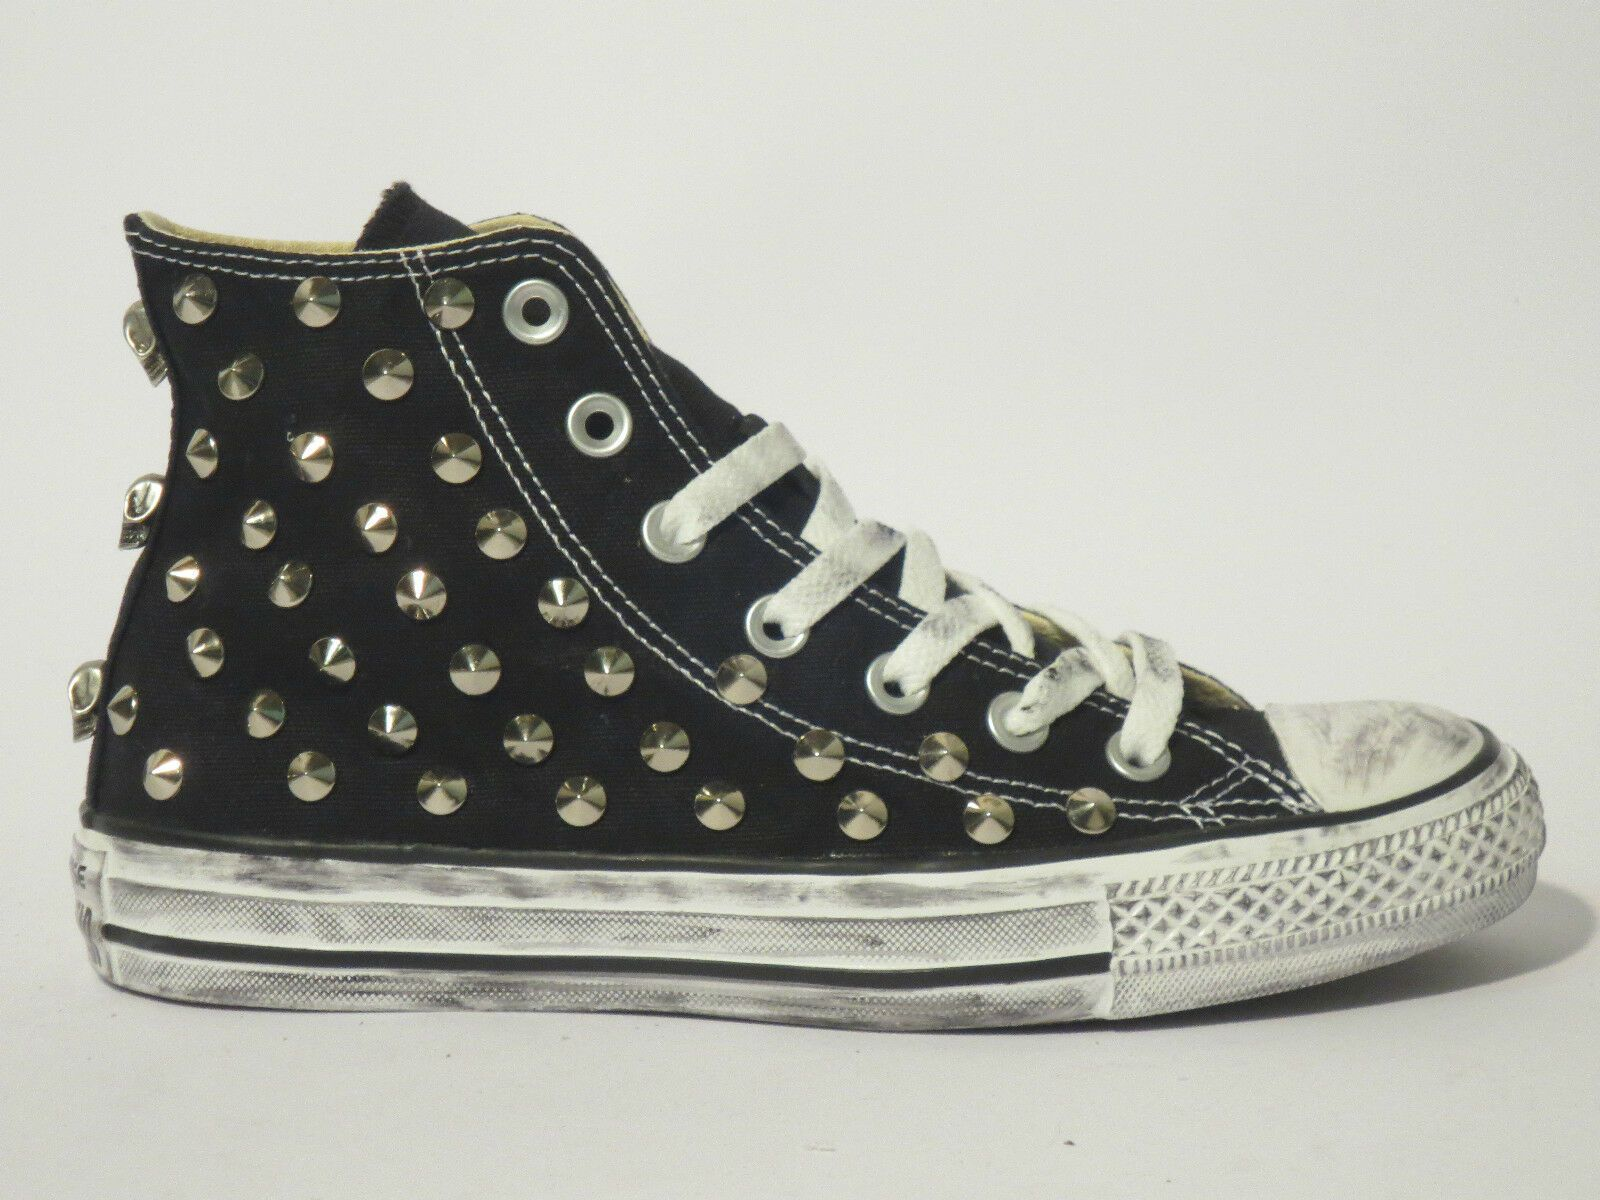 converse all star uomo nero